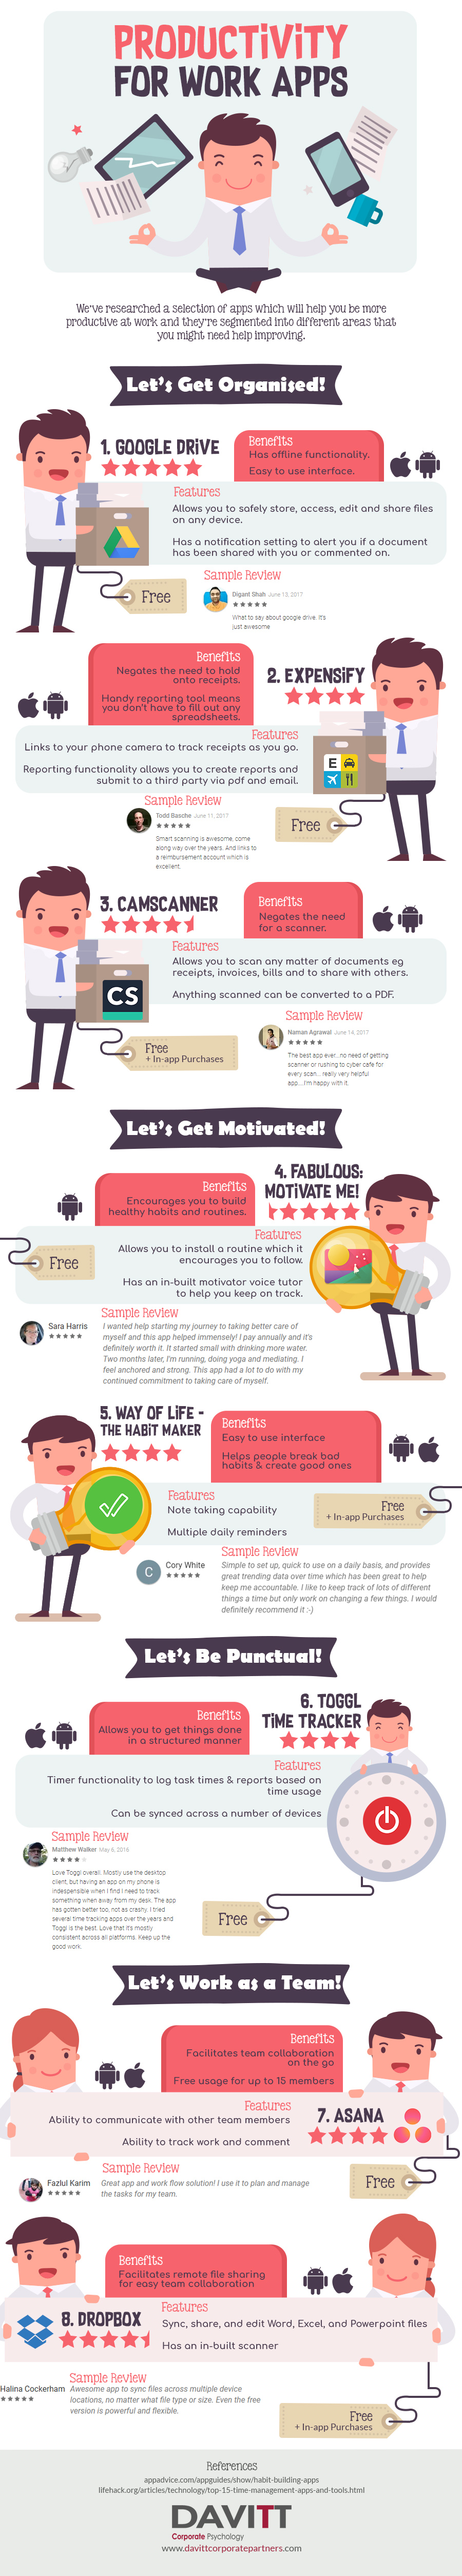 Productivity-at-work-apps-that-are-good-Infographic.jpg